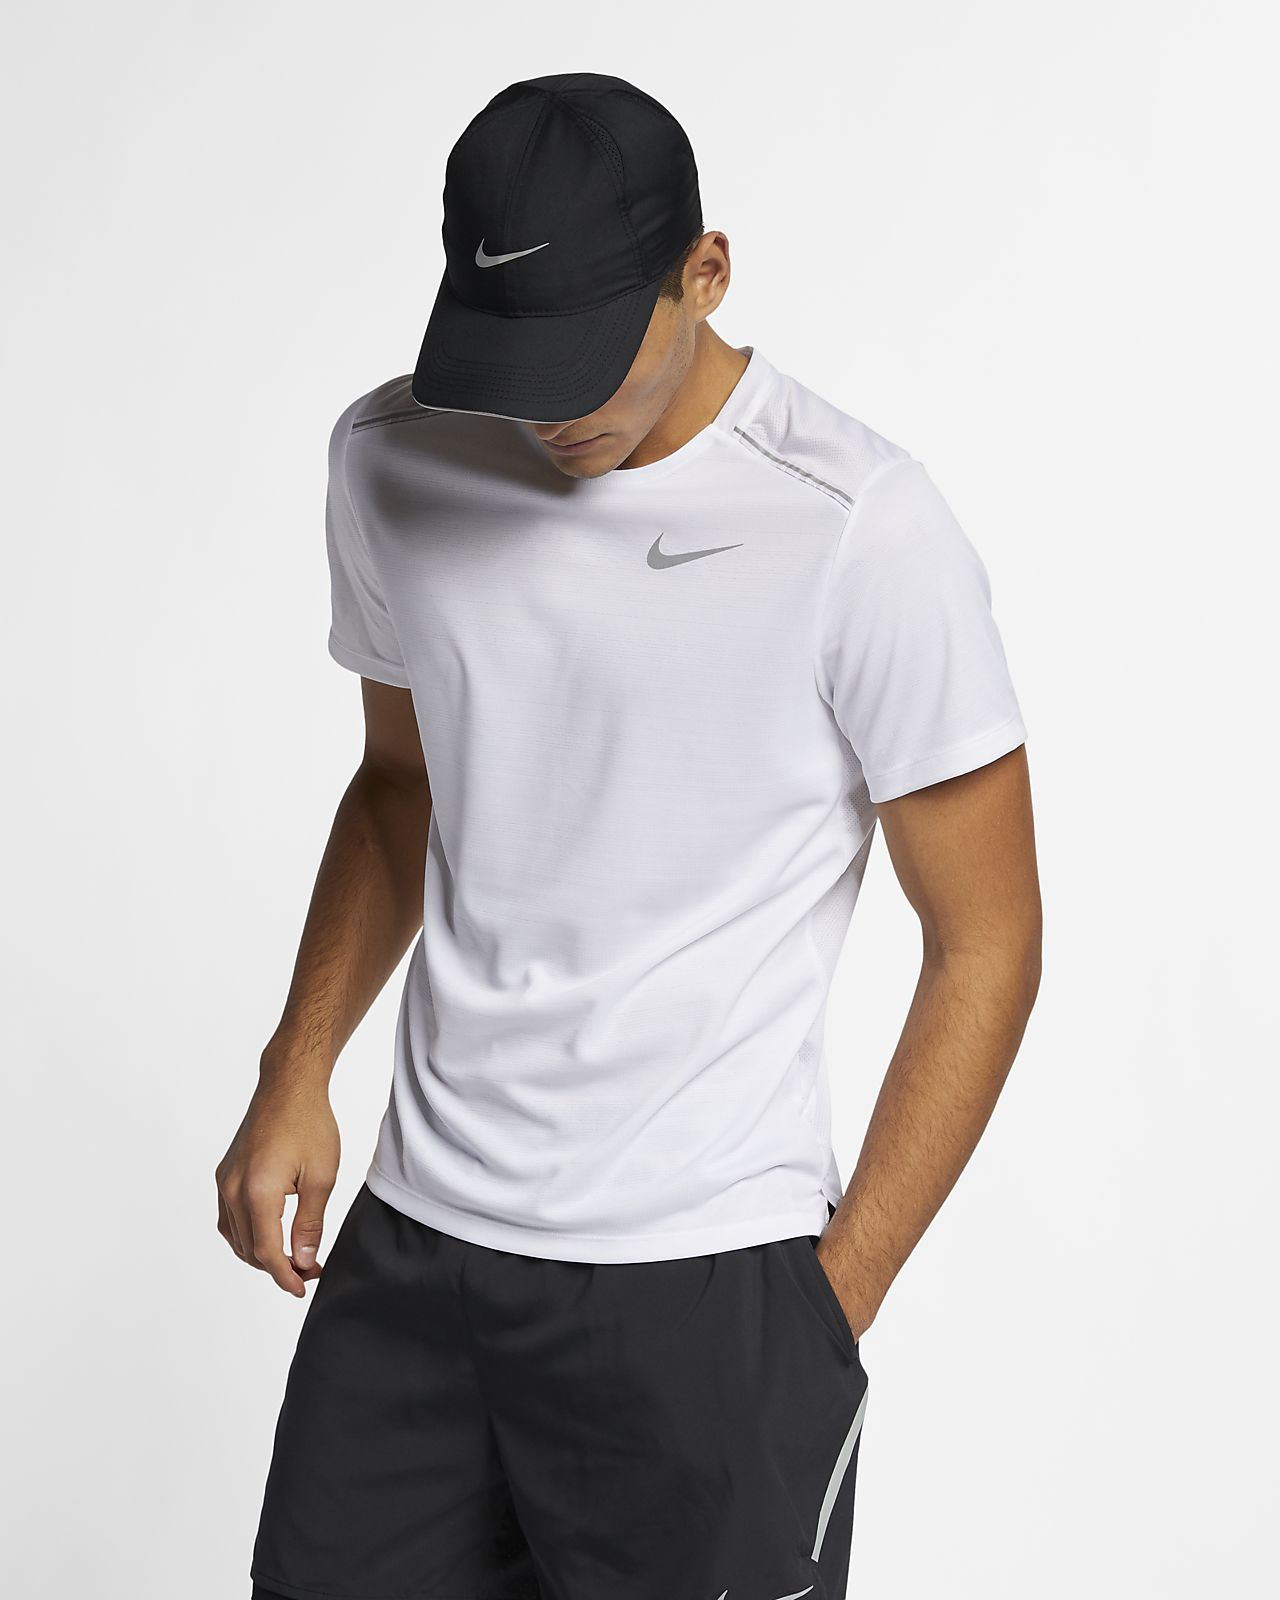 85a73dcce989 Nike Dri-FIT Miler Men s Short-Sleeve Running Top. Nike.com